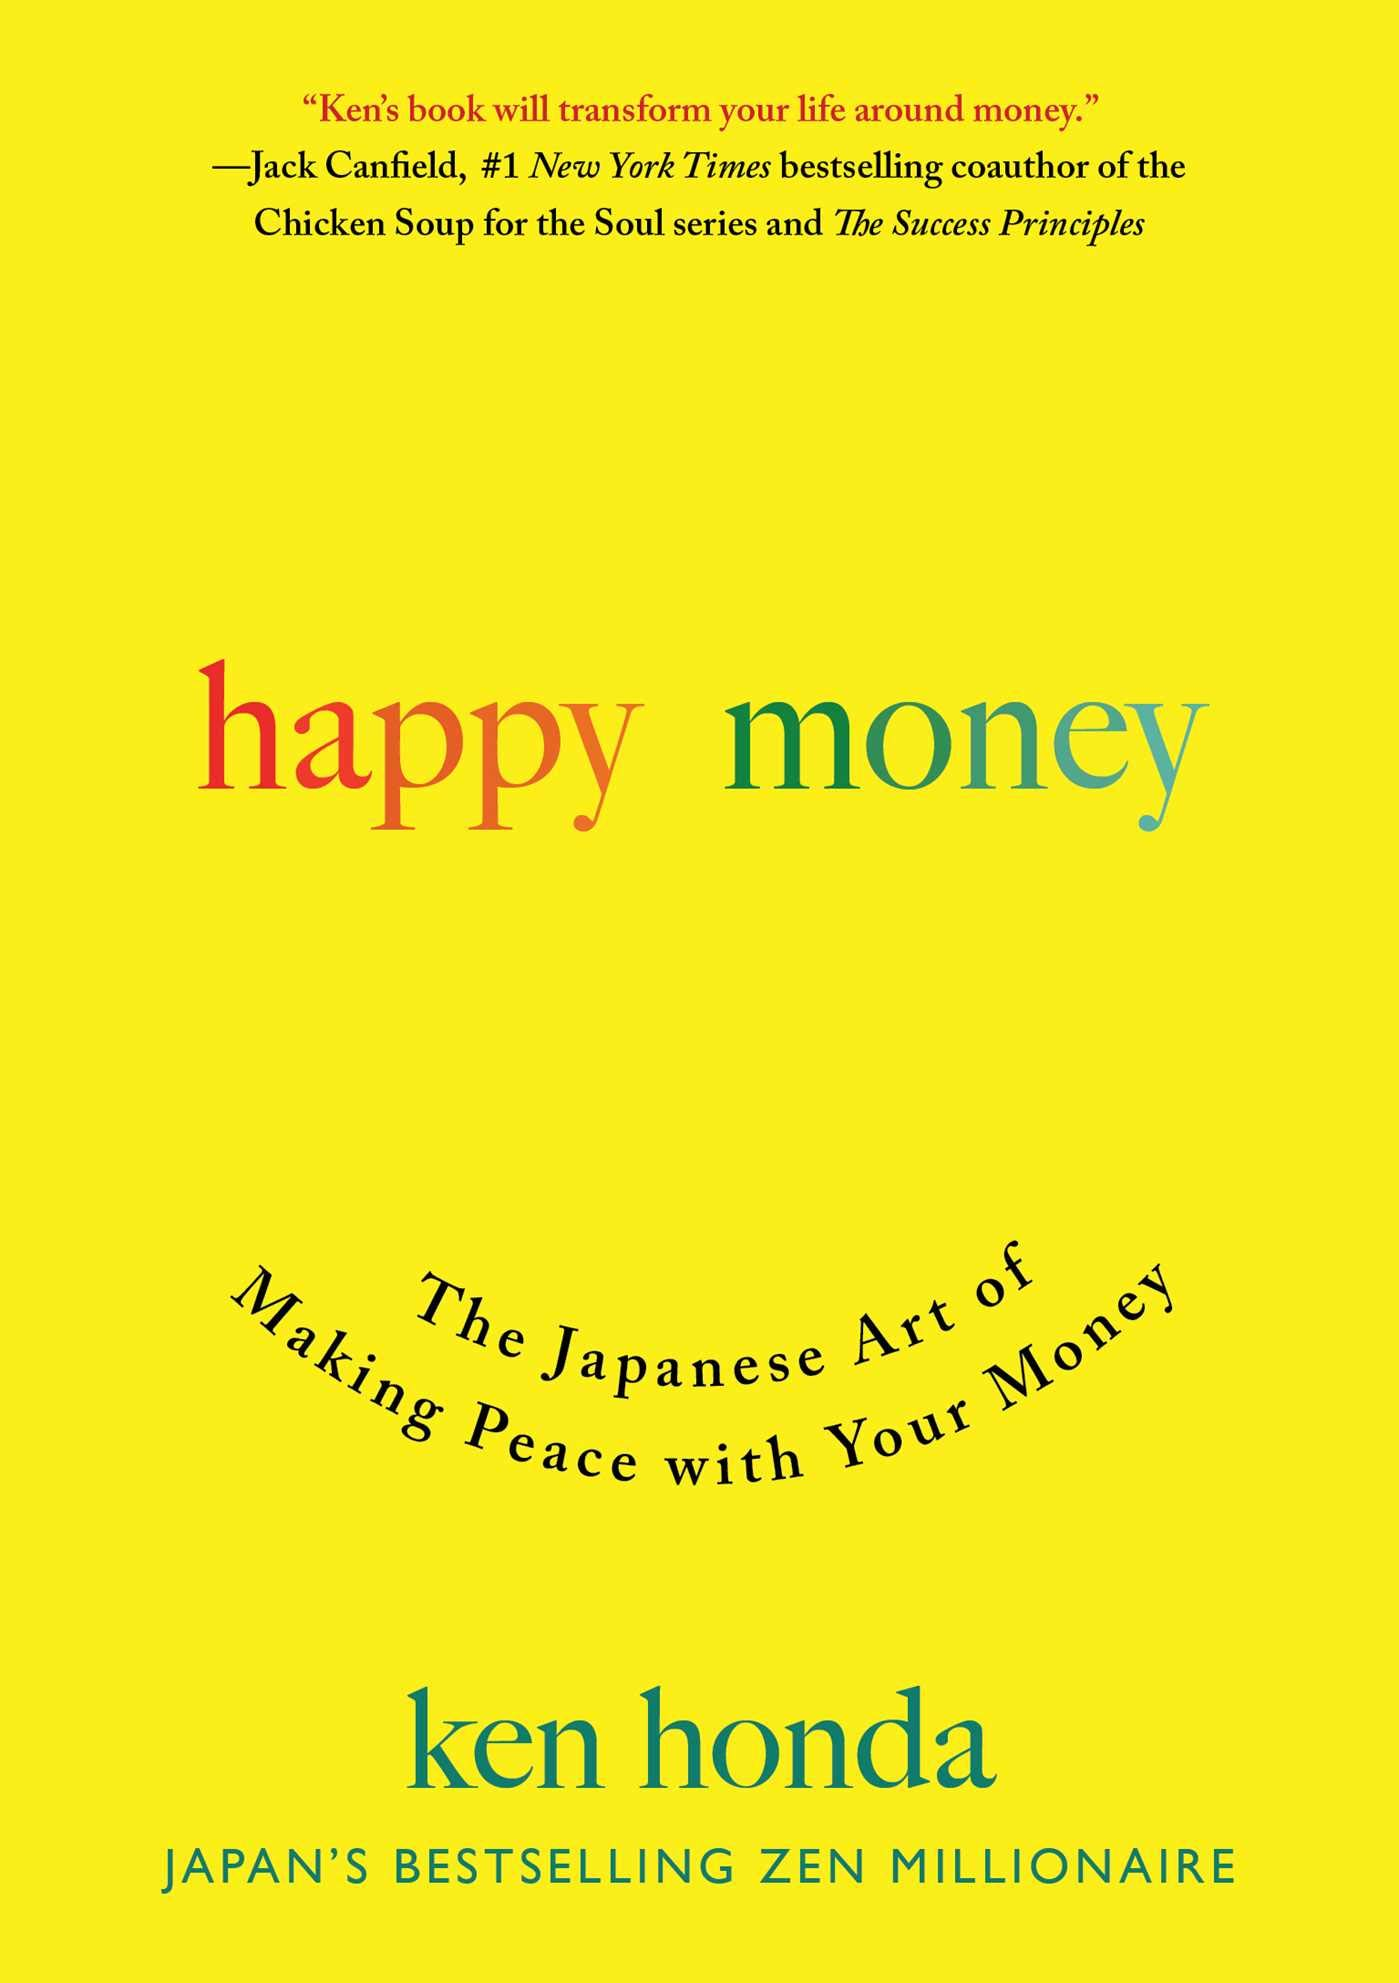 Congratulations to Ken Honda on the Release of Happy Money